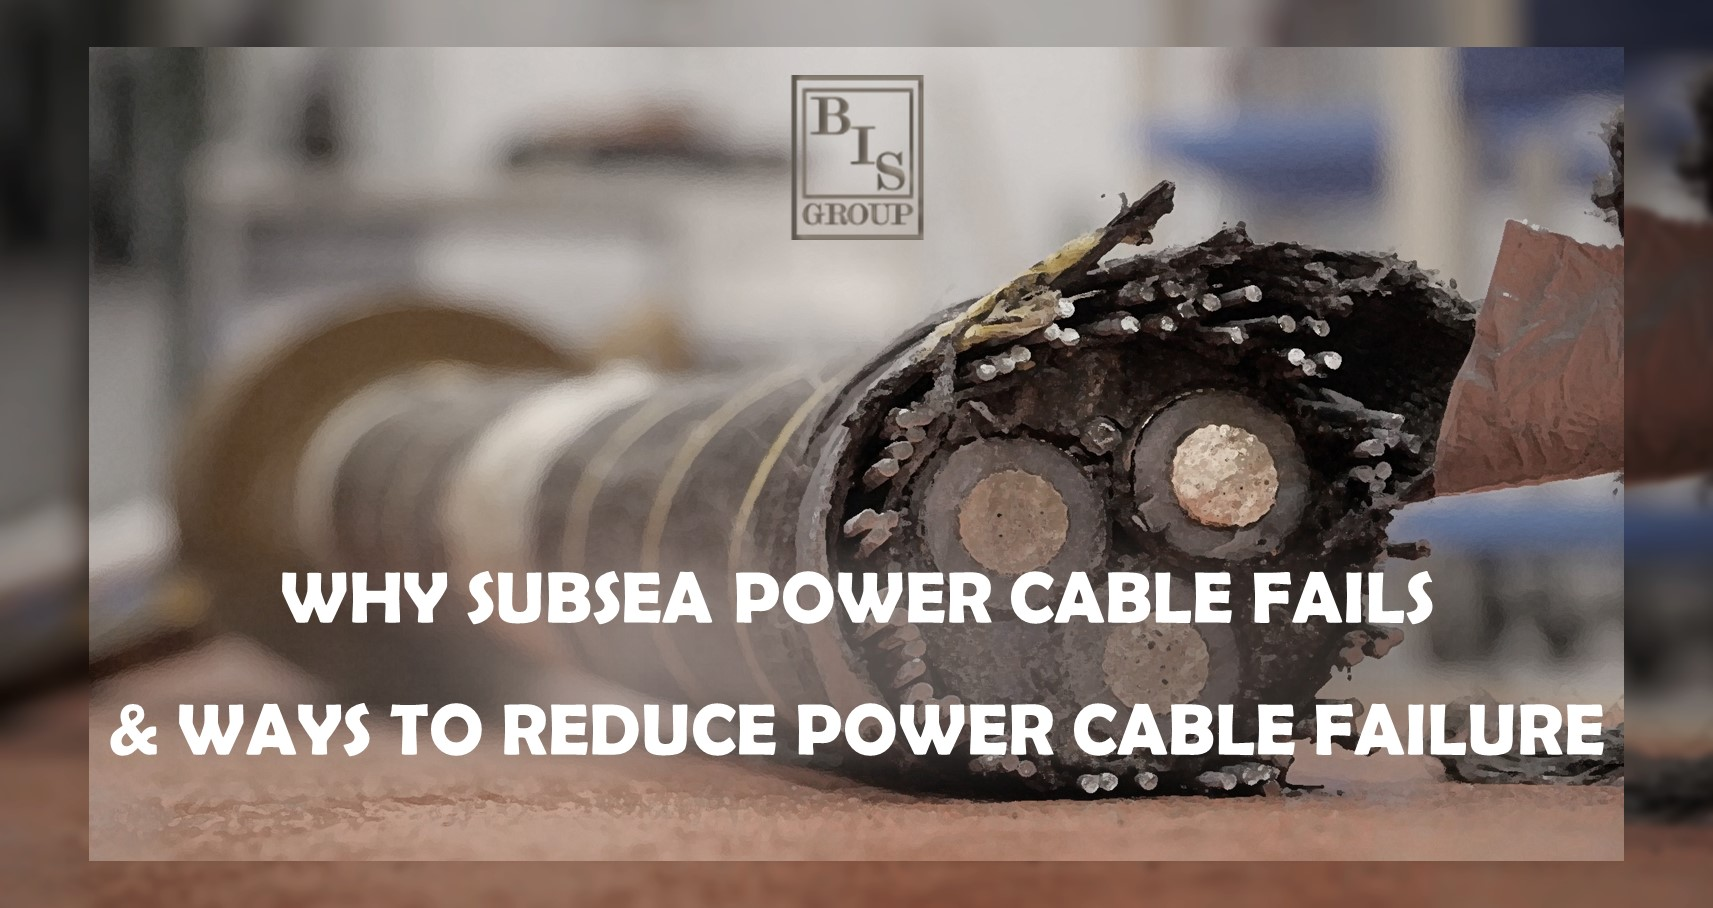 Reasons Why Subsea Power Cable Fails & Ways on How to Reduce Power Cable Failure